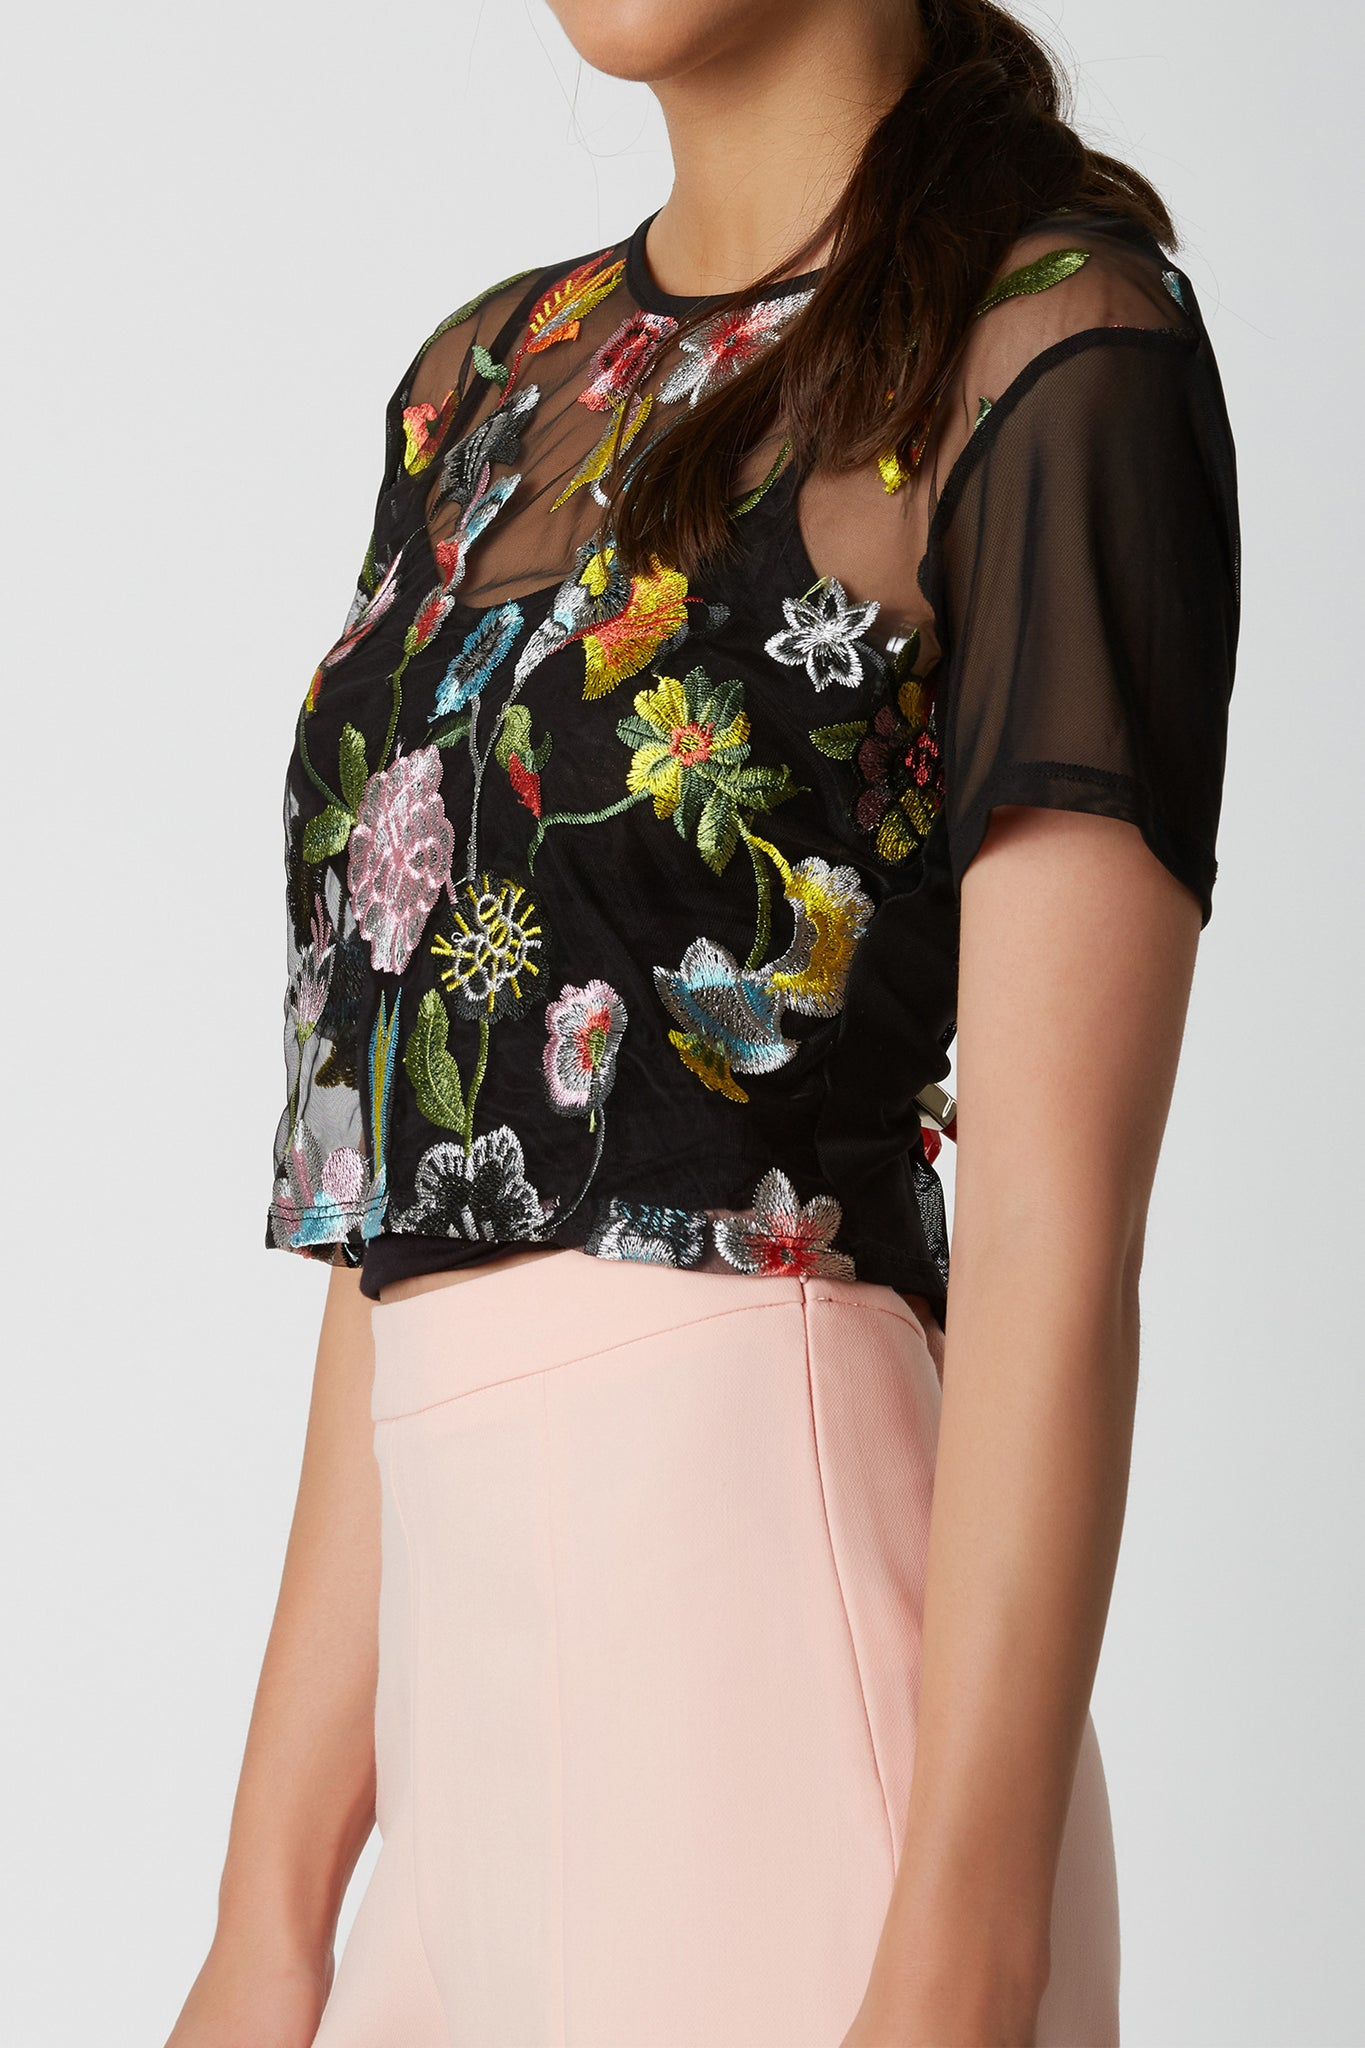 Short sleeve mesh top with oversized fit and colorful embroidery in front. Comes with soft crop top for lining.